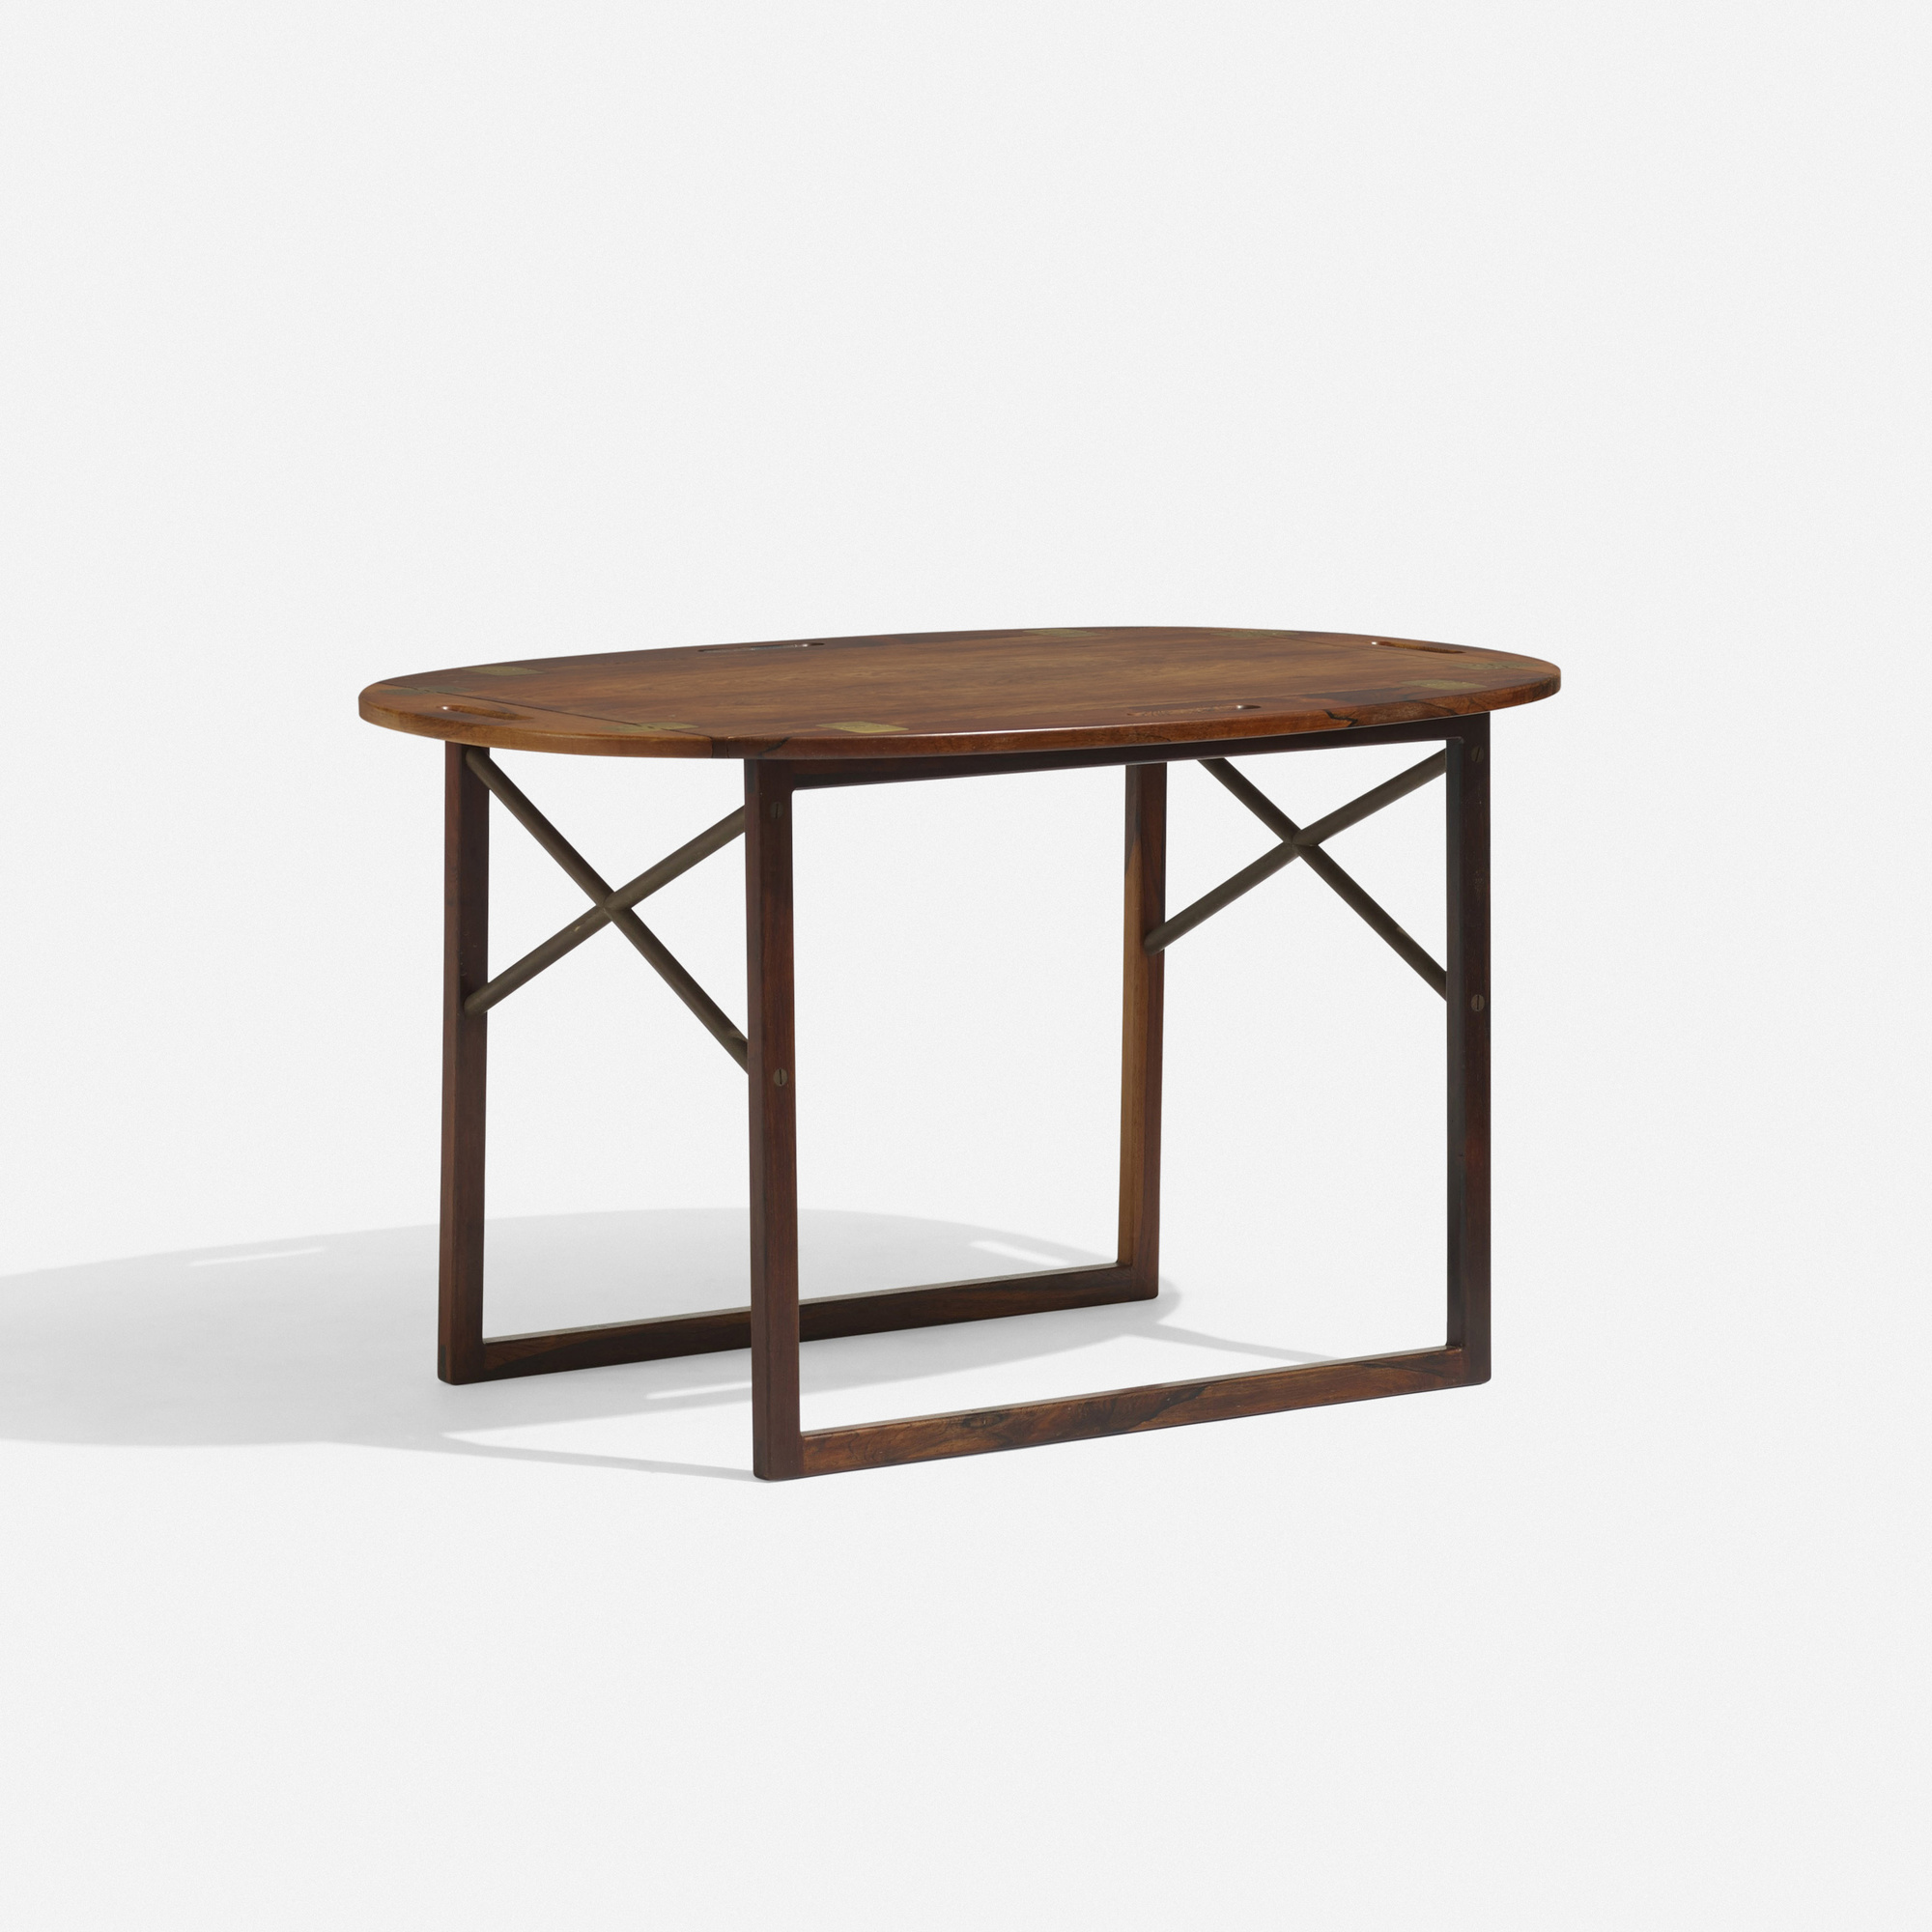 289: Svend Langkilde / tray table (2 of 3)